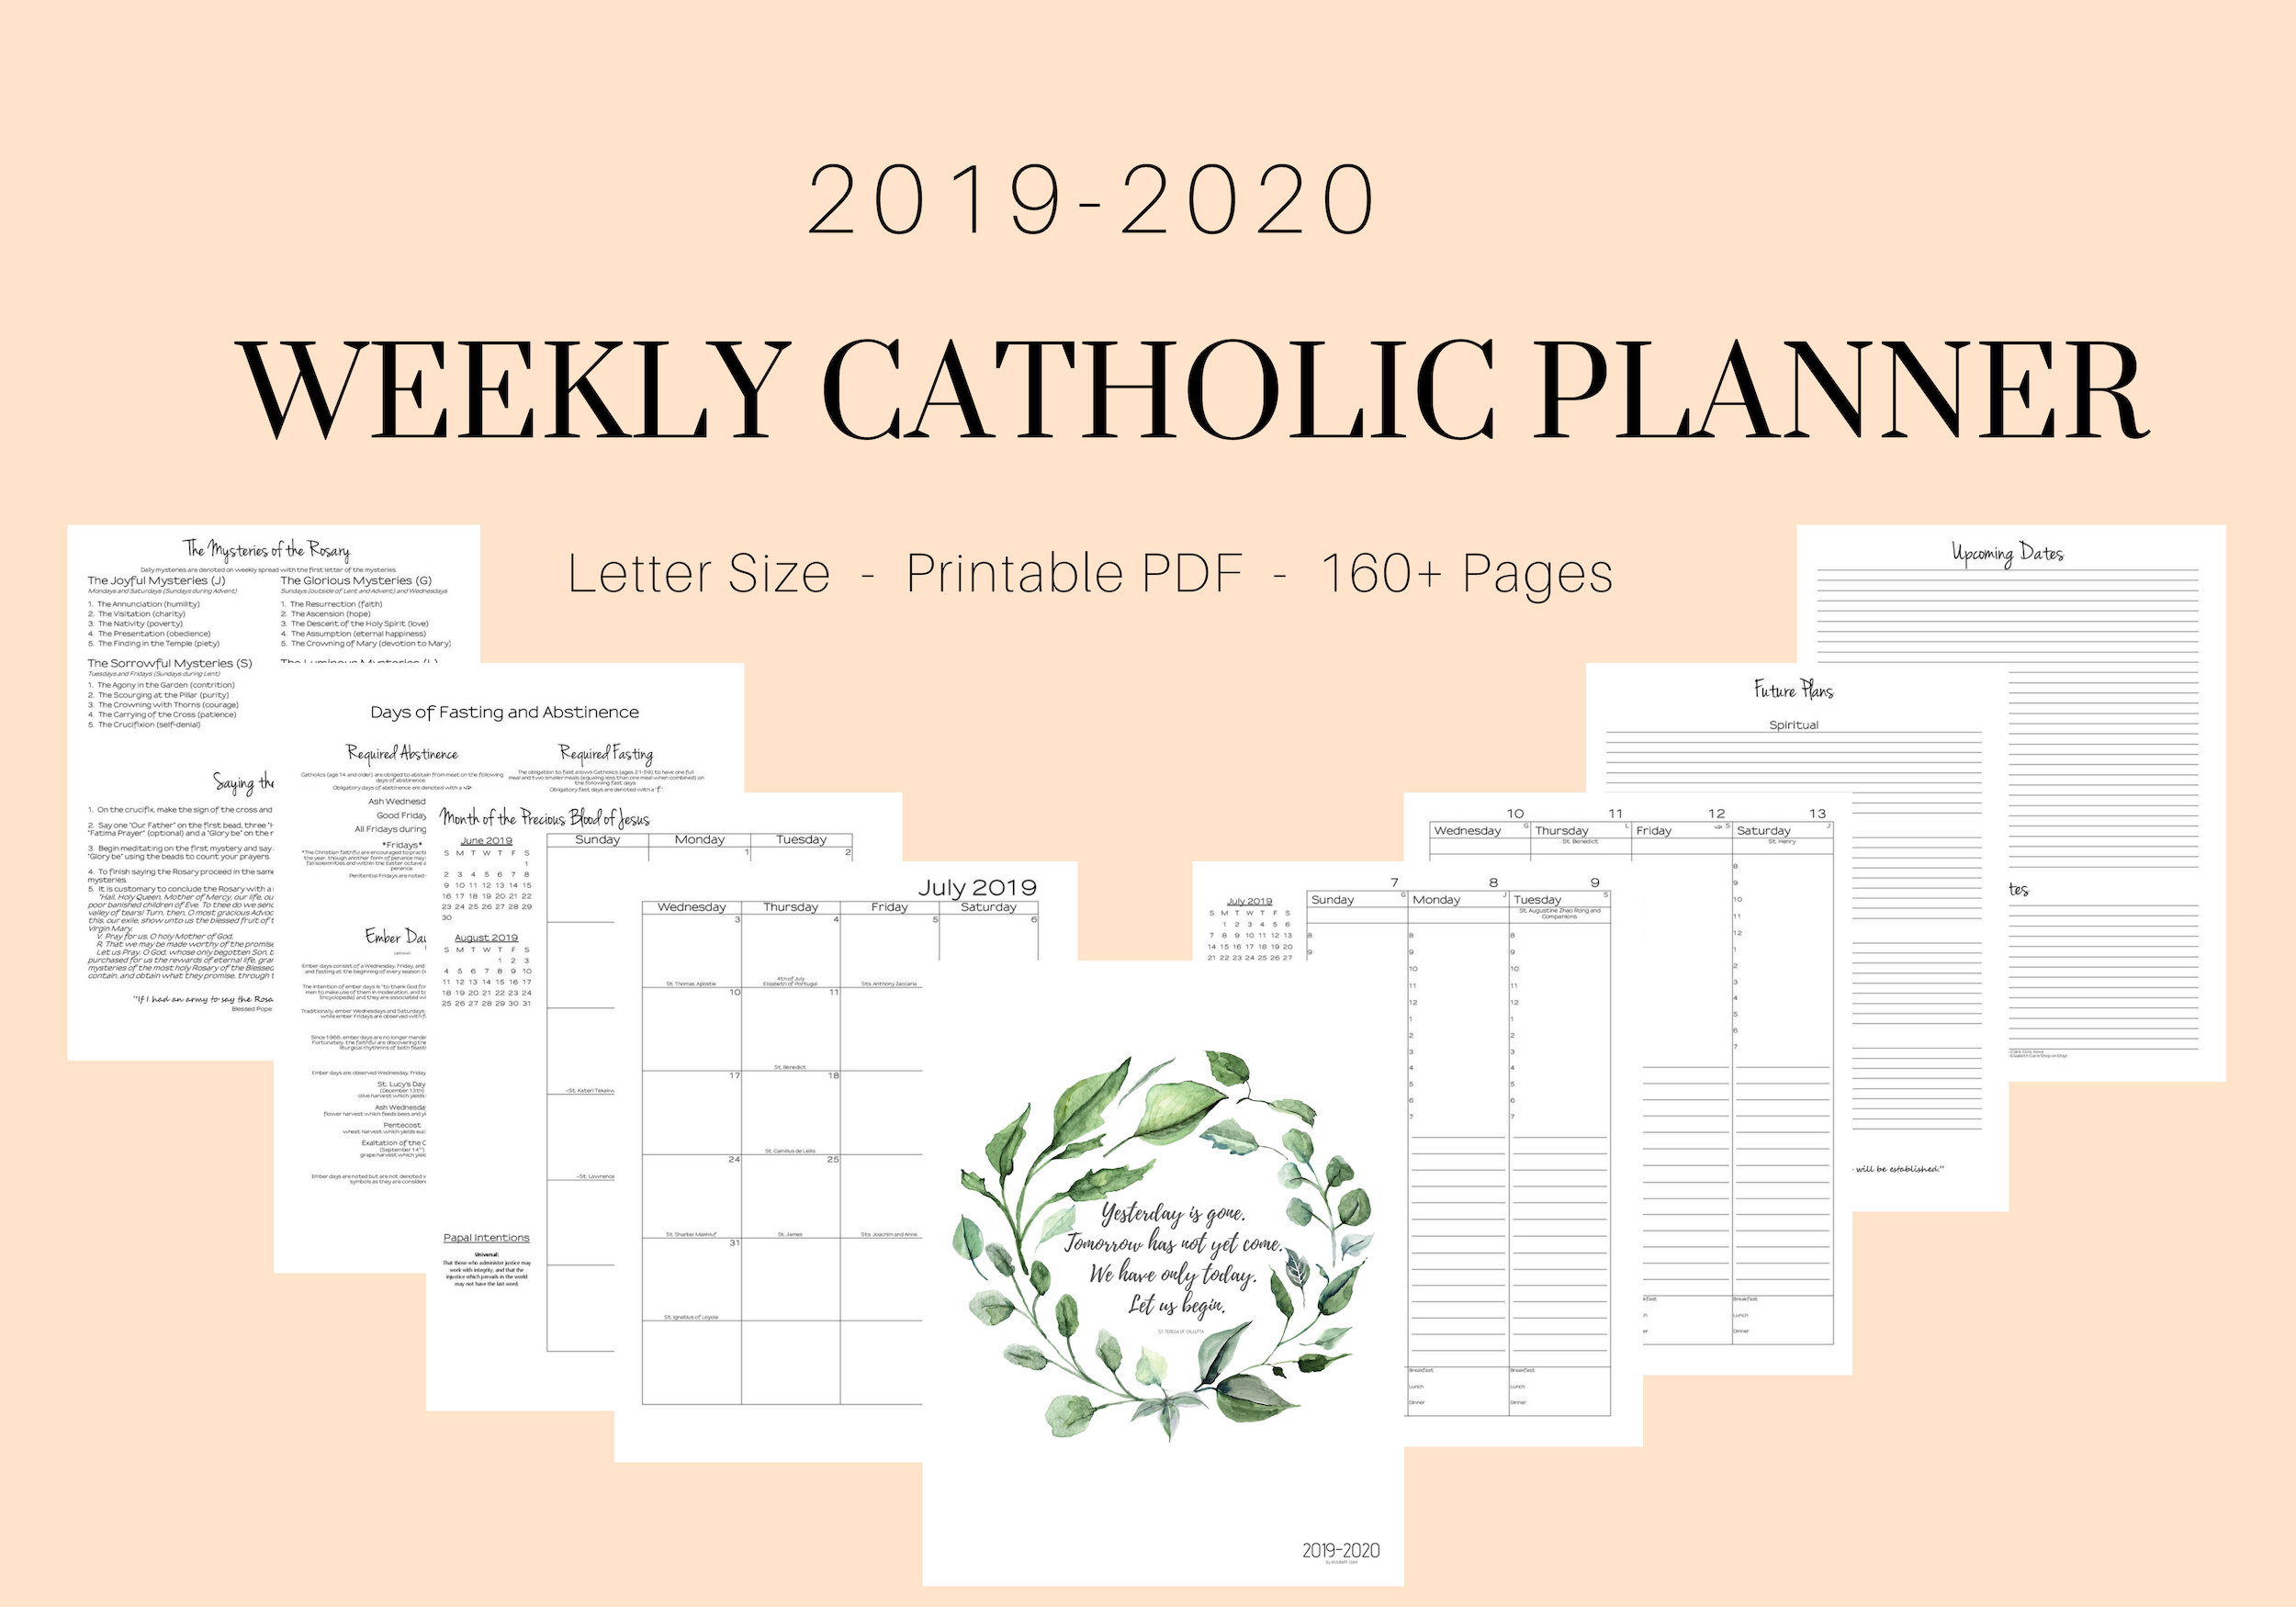 2019 - 2020 Catholic Planner Weekly Printable: Daily Planner / Weekly  Calendar / Liturgical Planner / Printable Catholic Planner